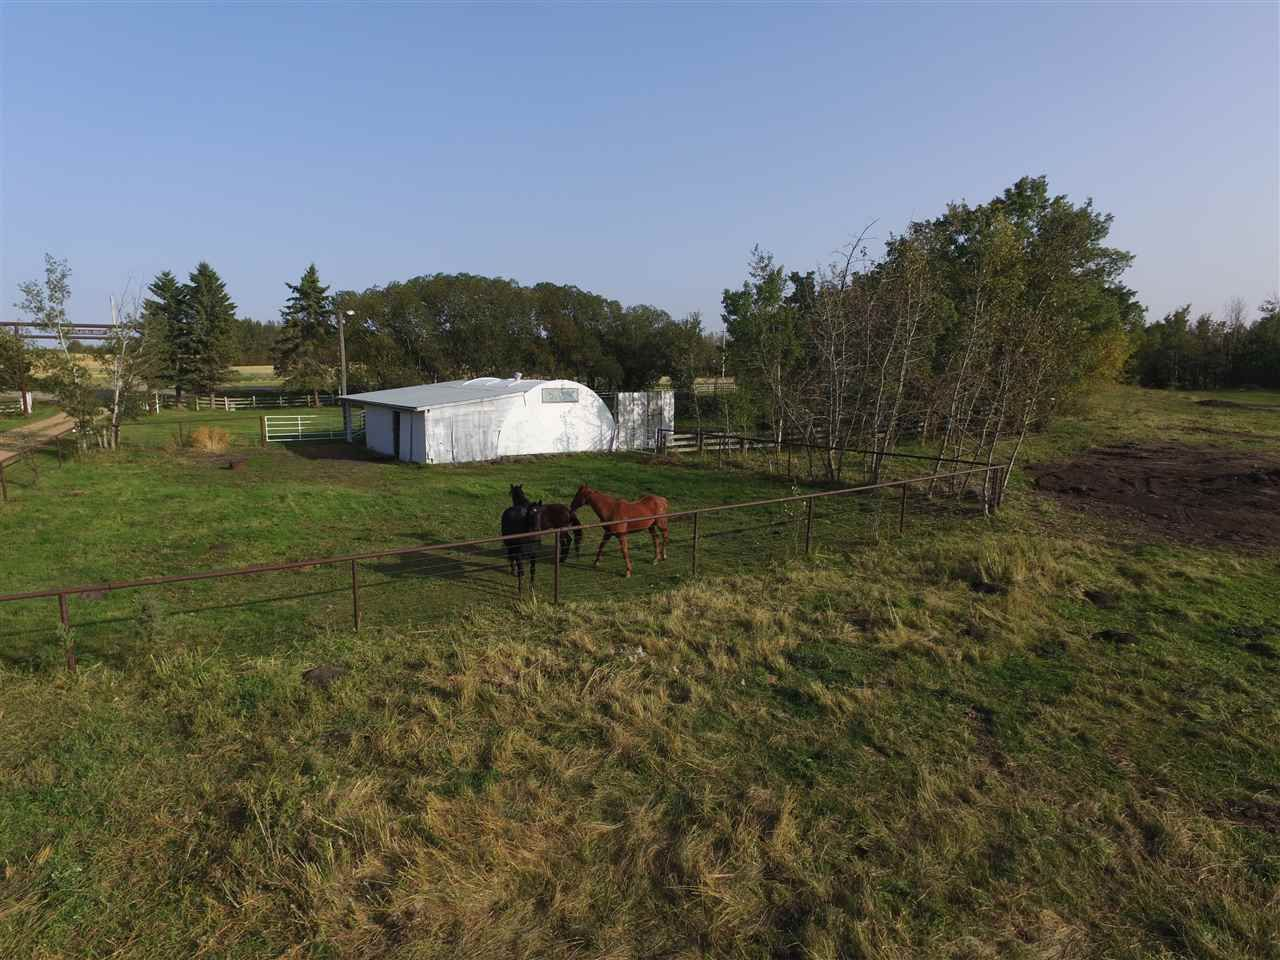 Photo 17: Photos: 472050A Hwy 814: Rural Wetaskiwin County House for sale : MLS®# E4213442